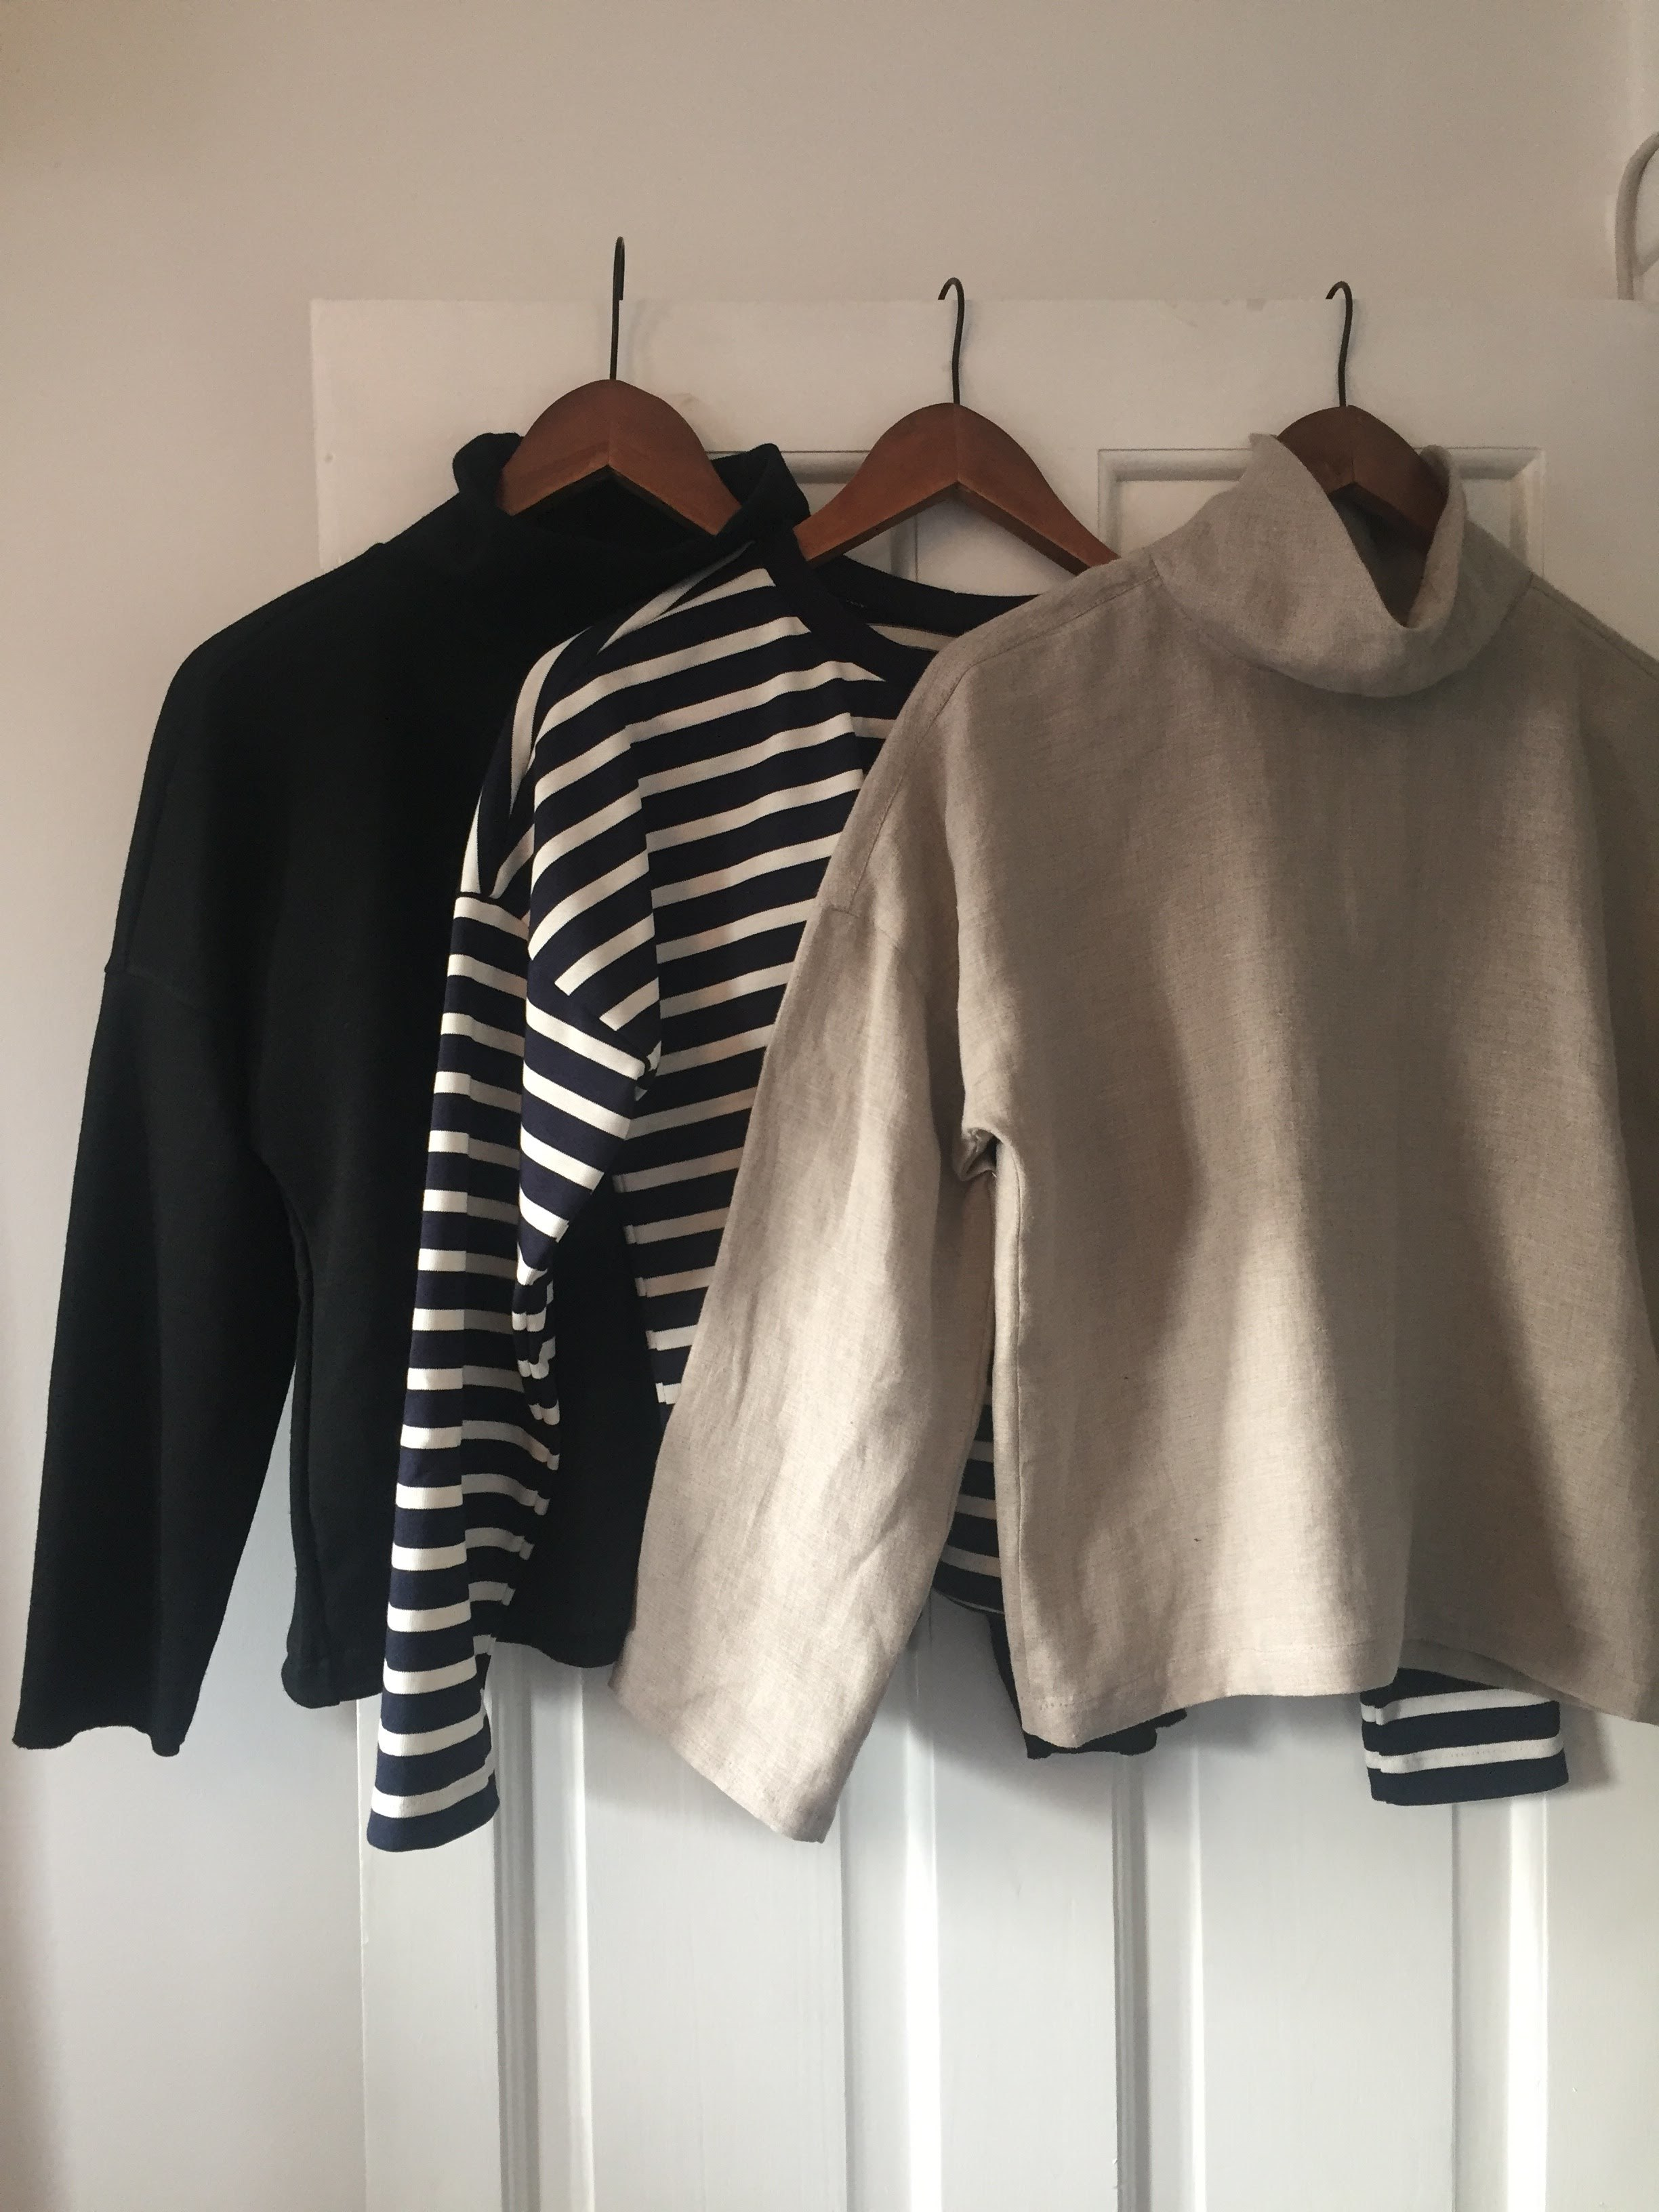 LB pullovers in three versions.